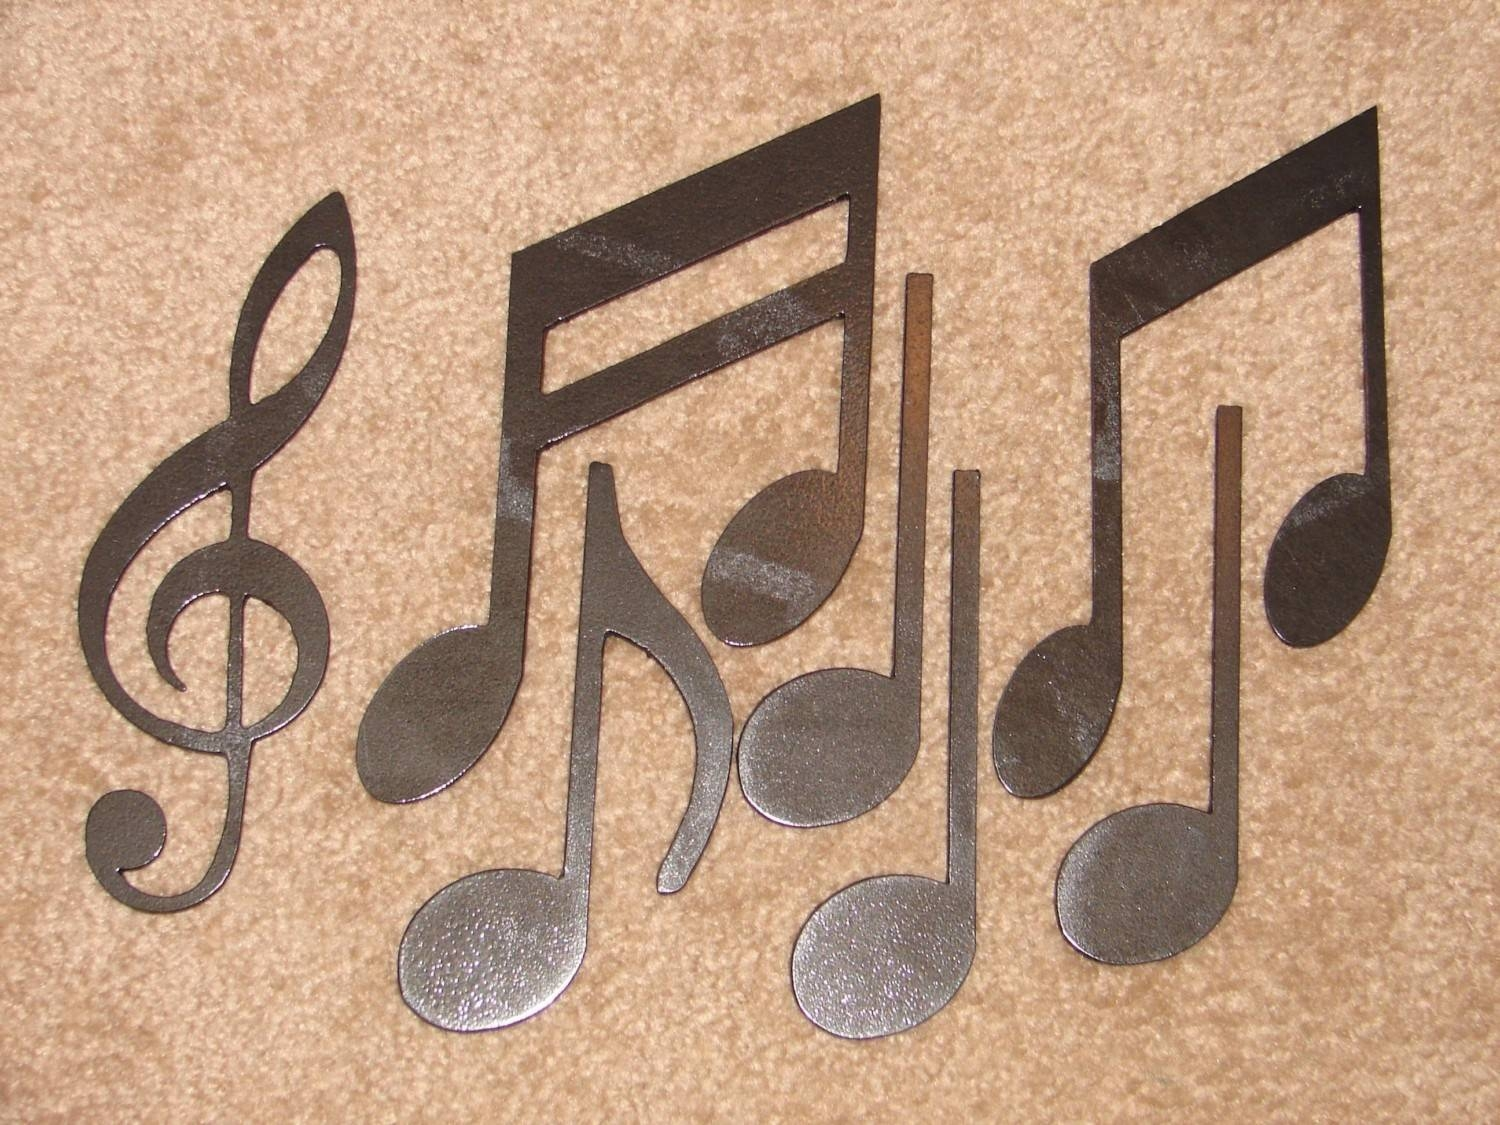 Metal Wall Art Decor Music Notes Musical Note Patio Regarding Current Music Note Wall Art Decor (View 5 of 20)